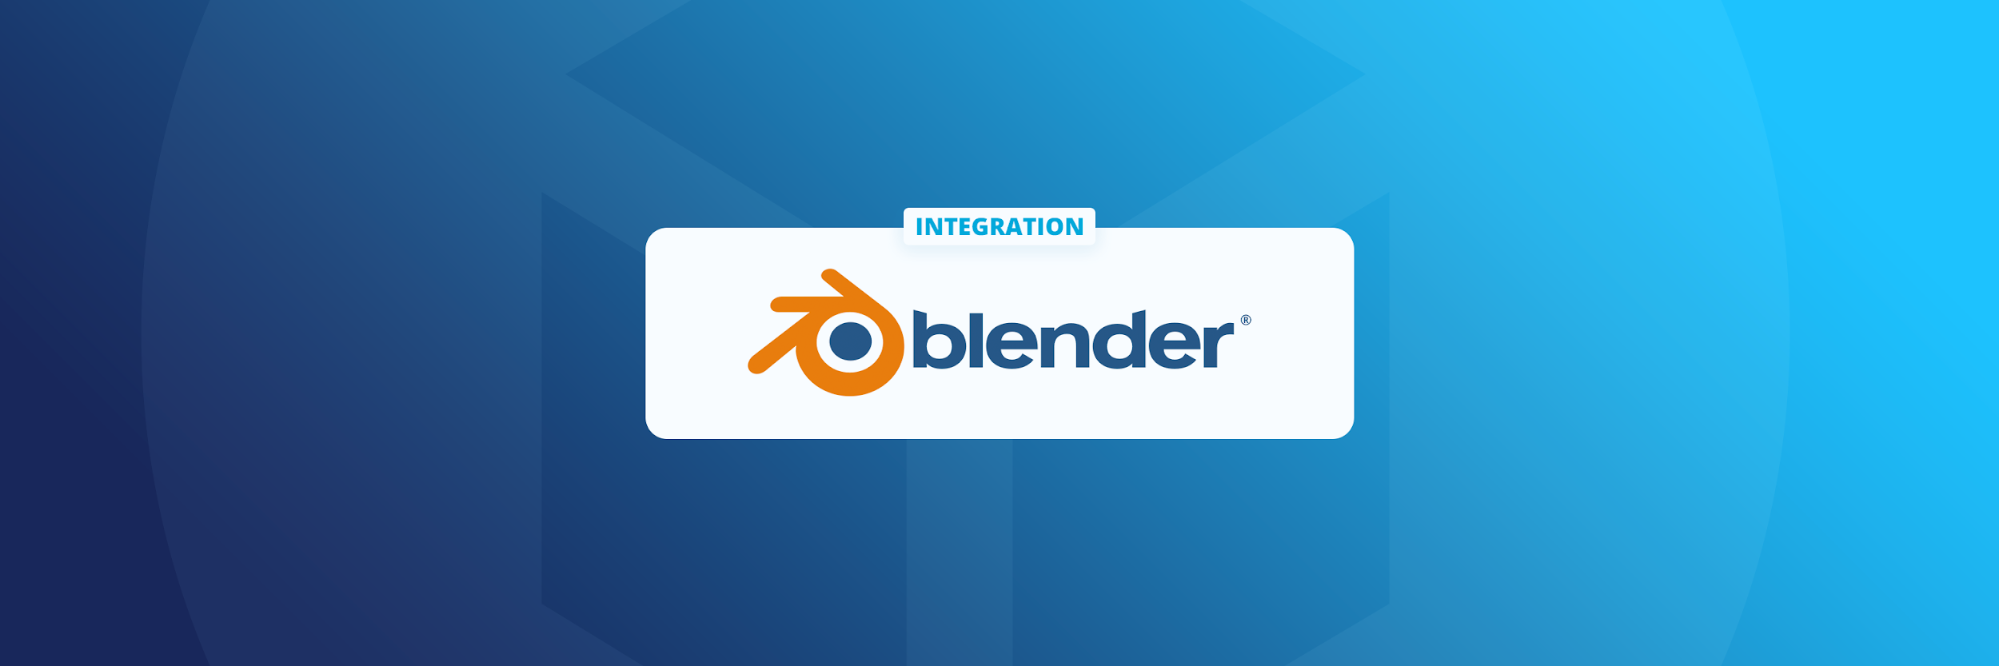 Where's the EXPORT for Sketchfab's Blender 2 8 plugin - Bugs